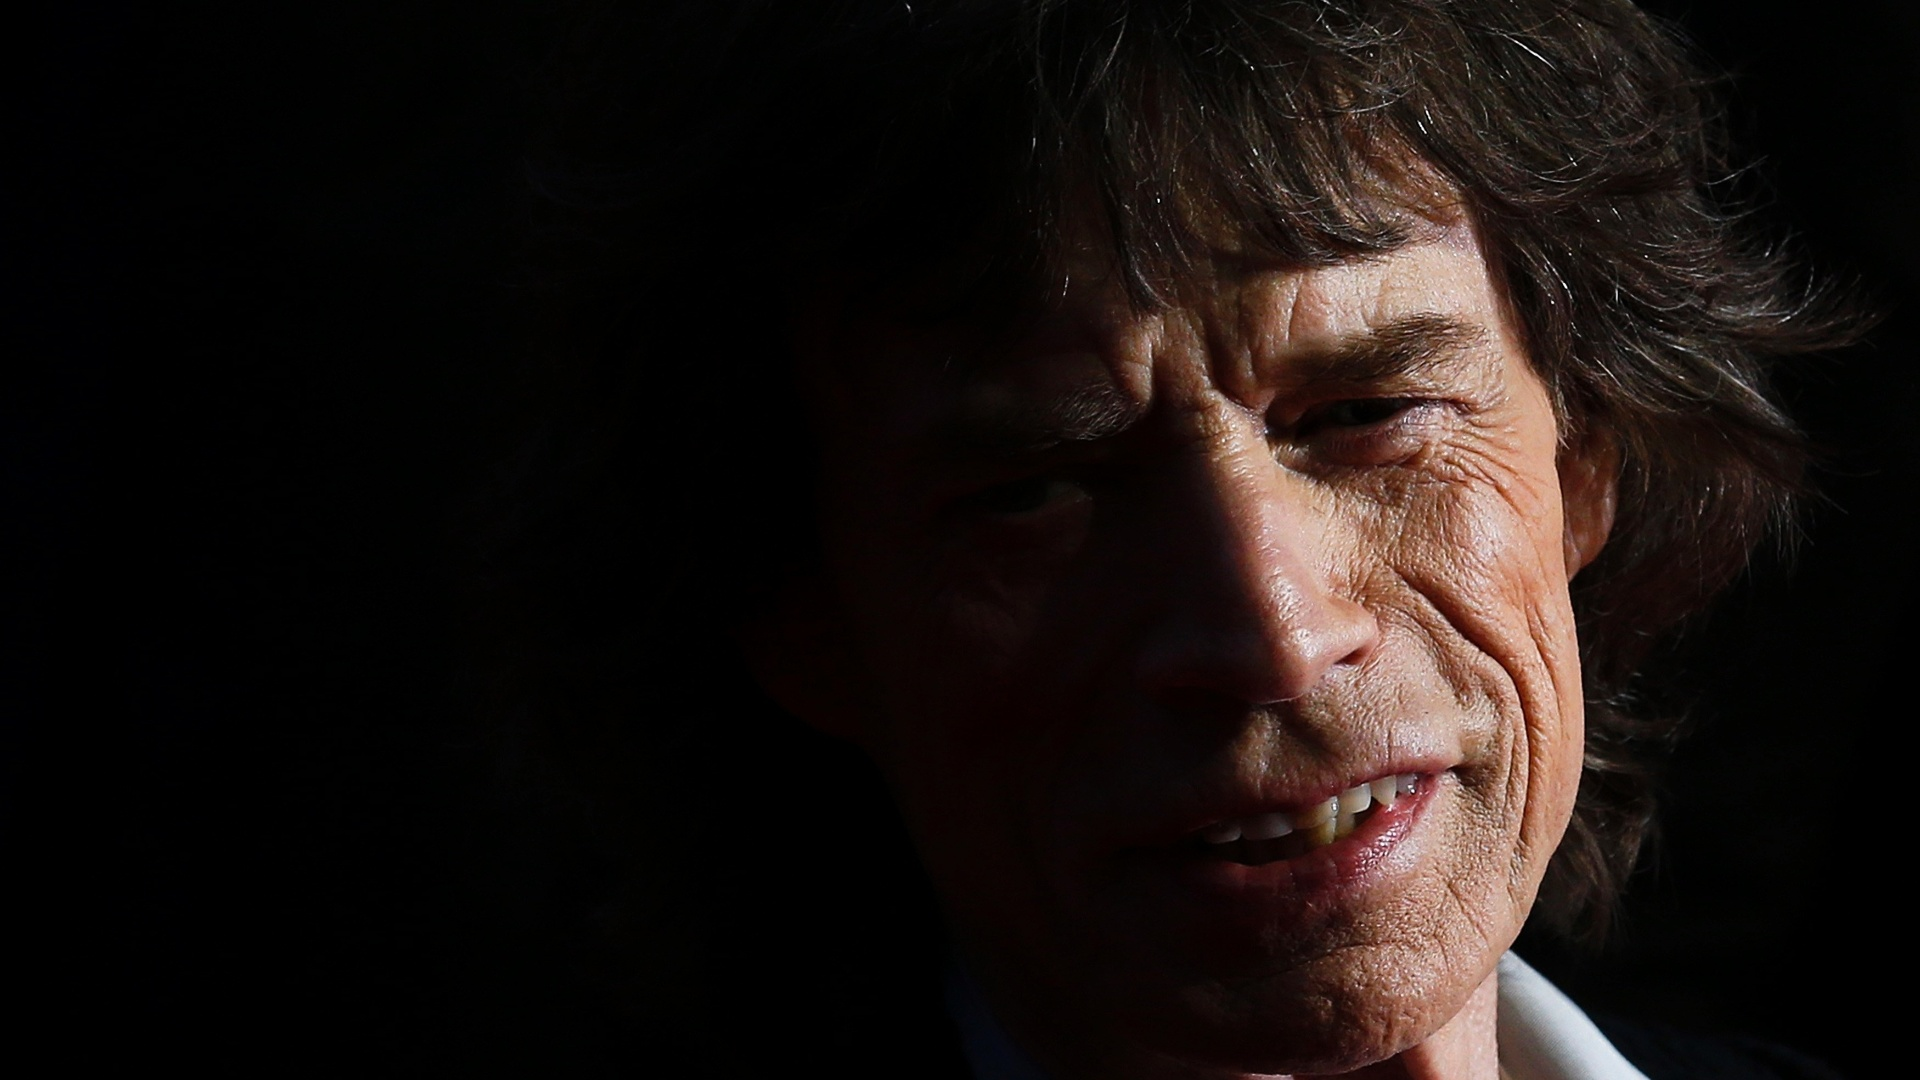 Vocalista dos Rolling Stones participa da premire de 